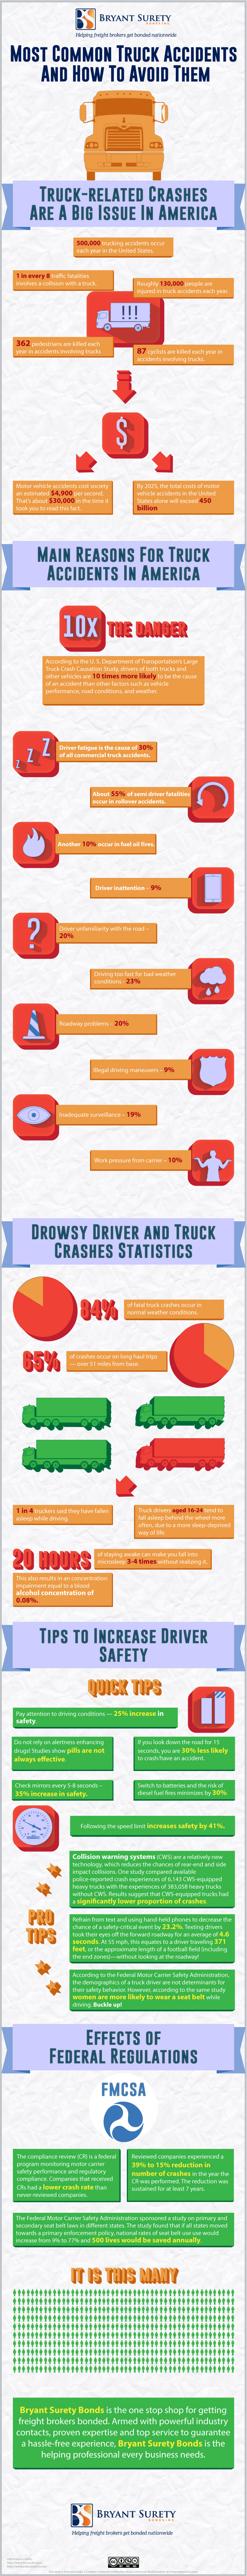 Most Common Truck Accidents and How to Avoid Them Infographic